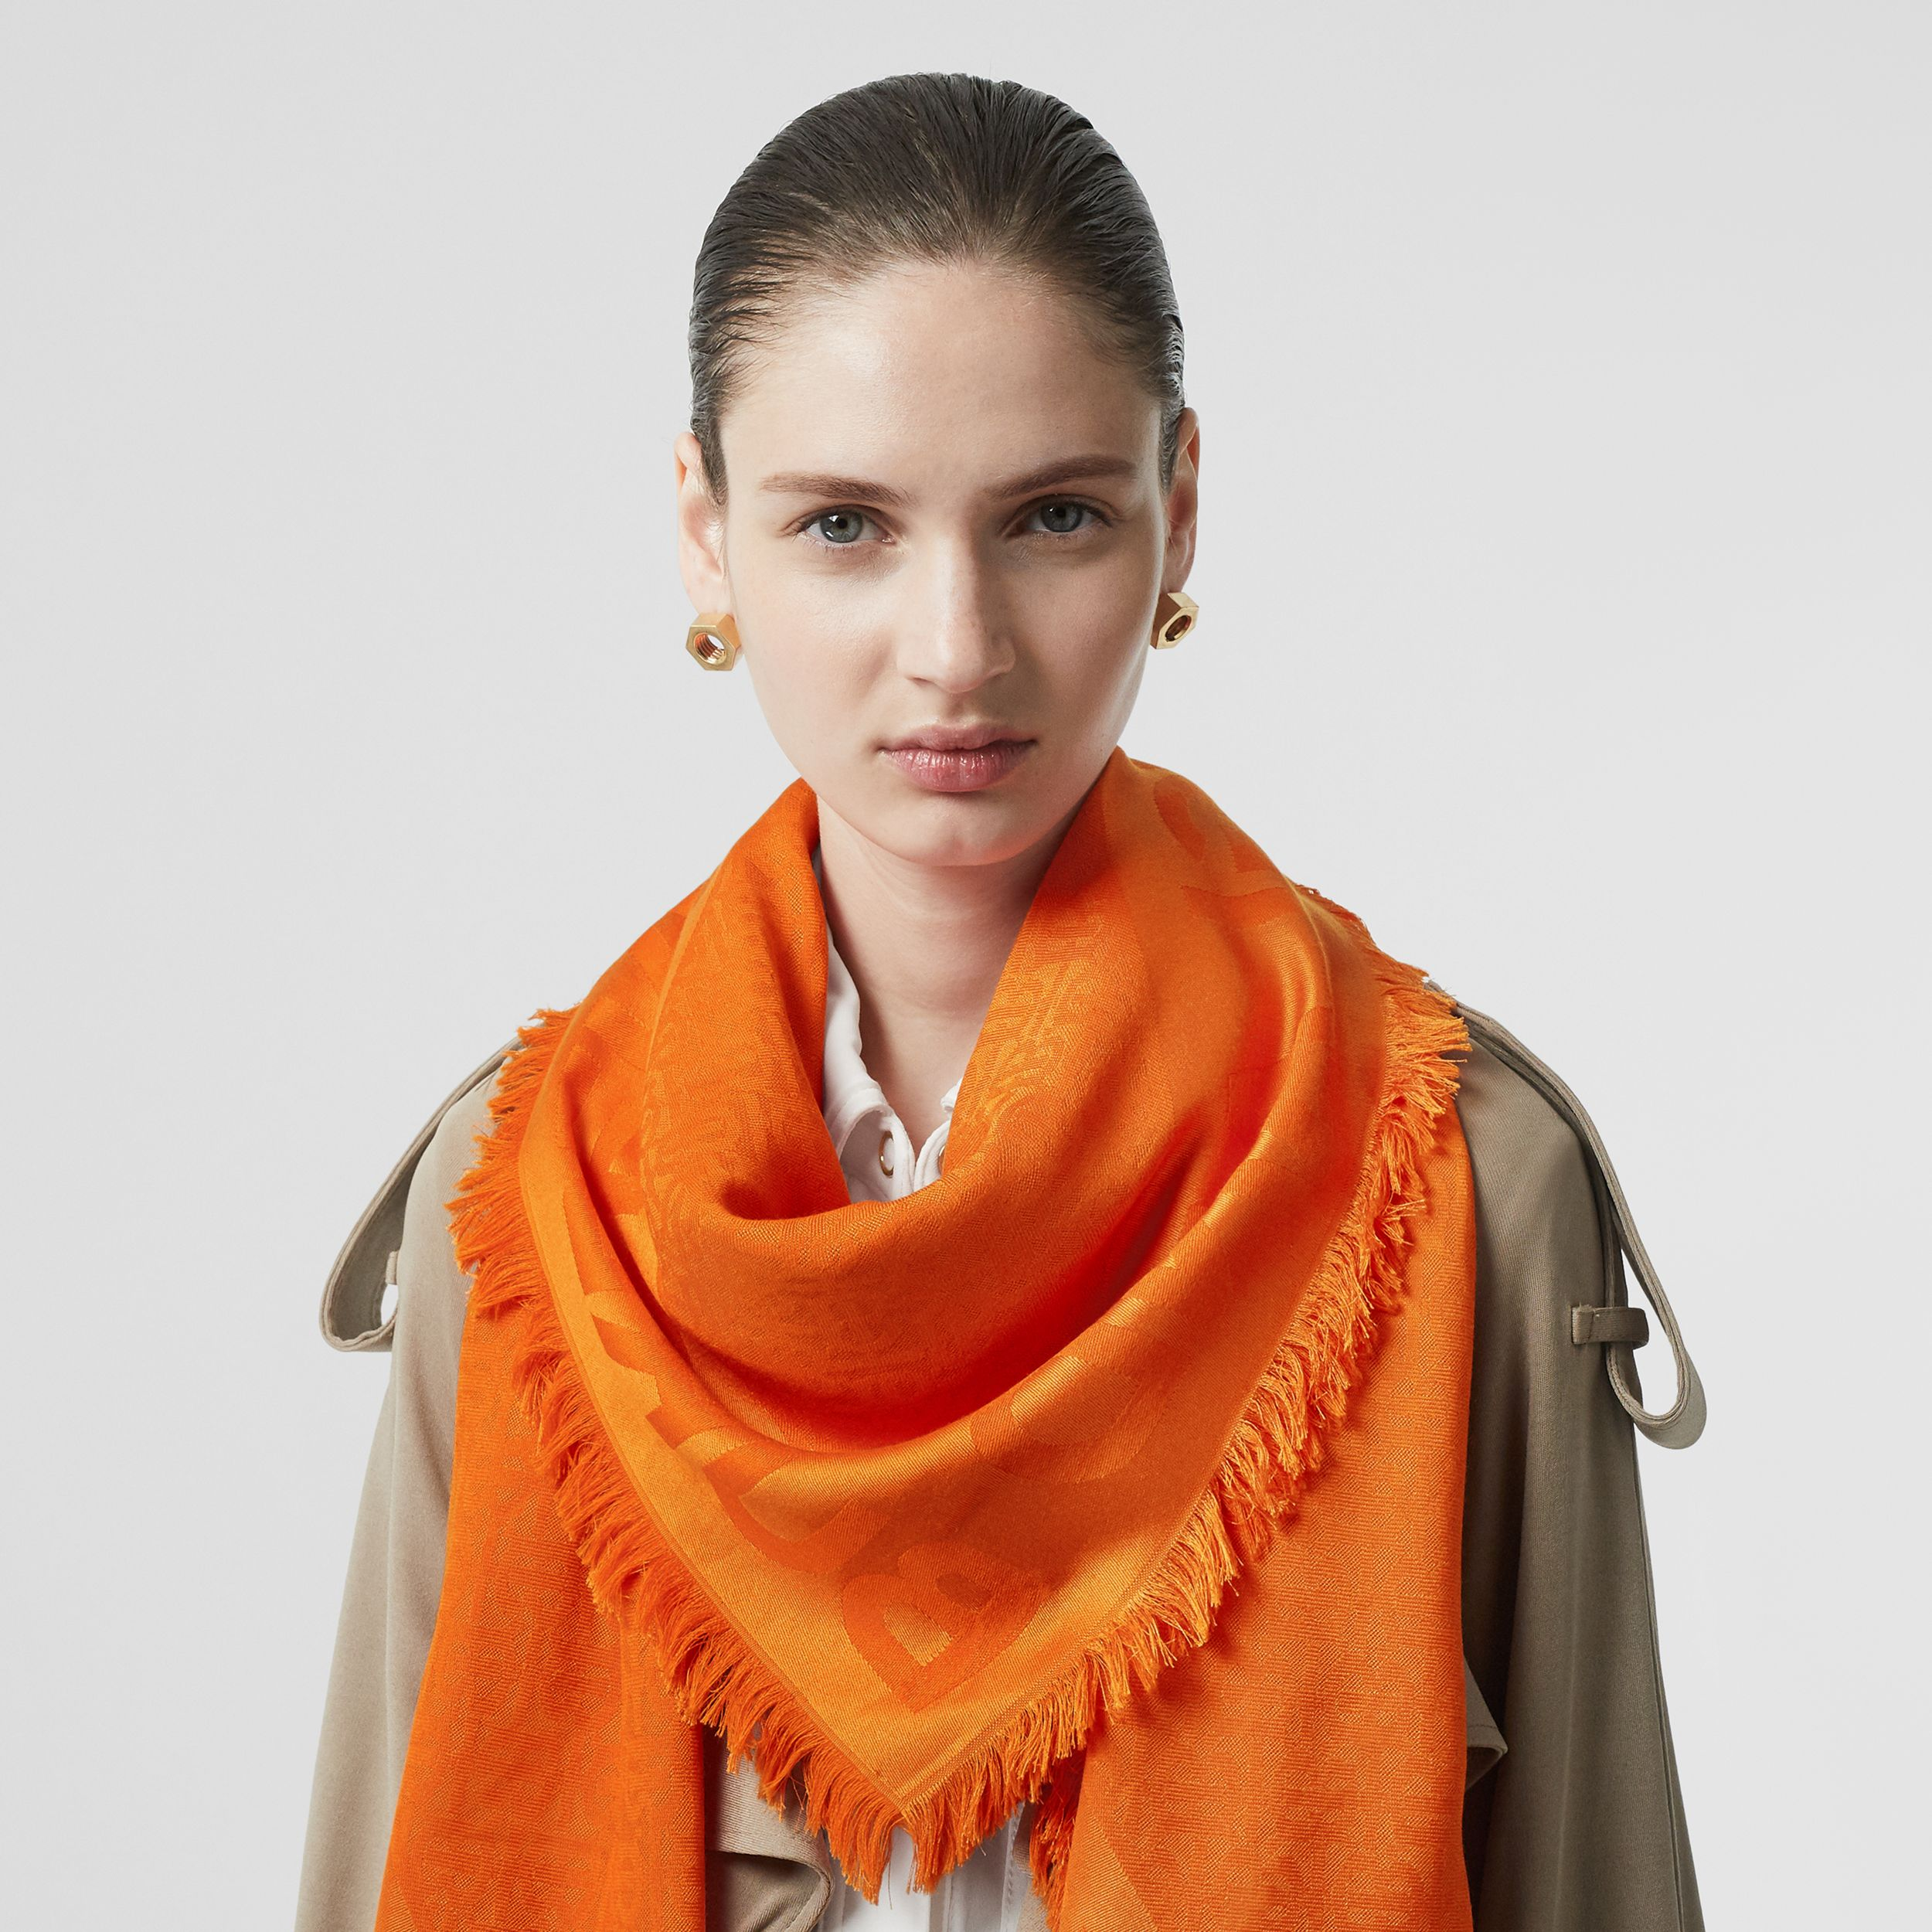 Monogram Silk Wool Jacquard Large Square Scarf in Orange | Burberry - 3